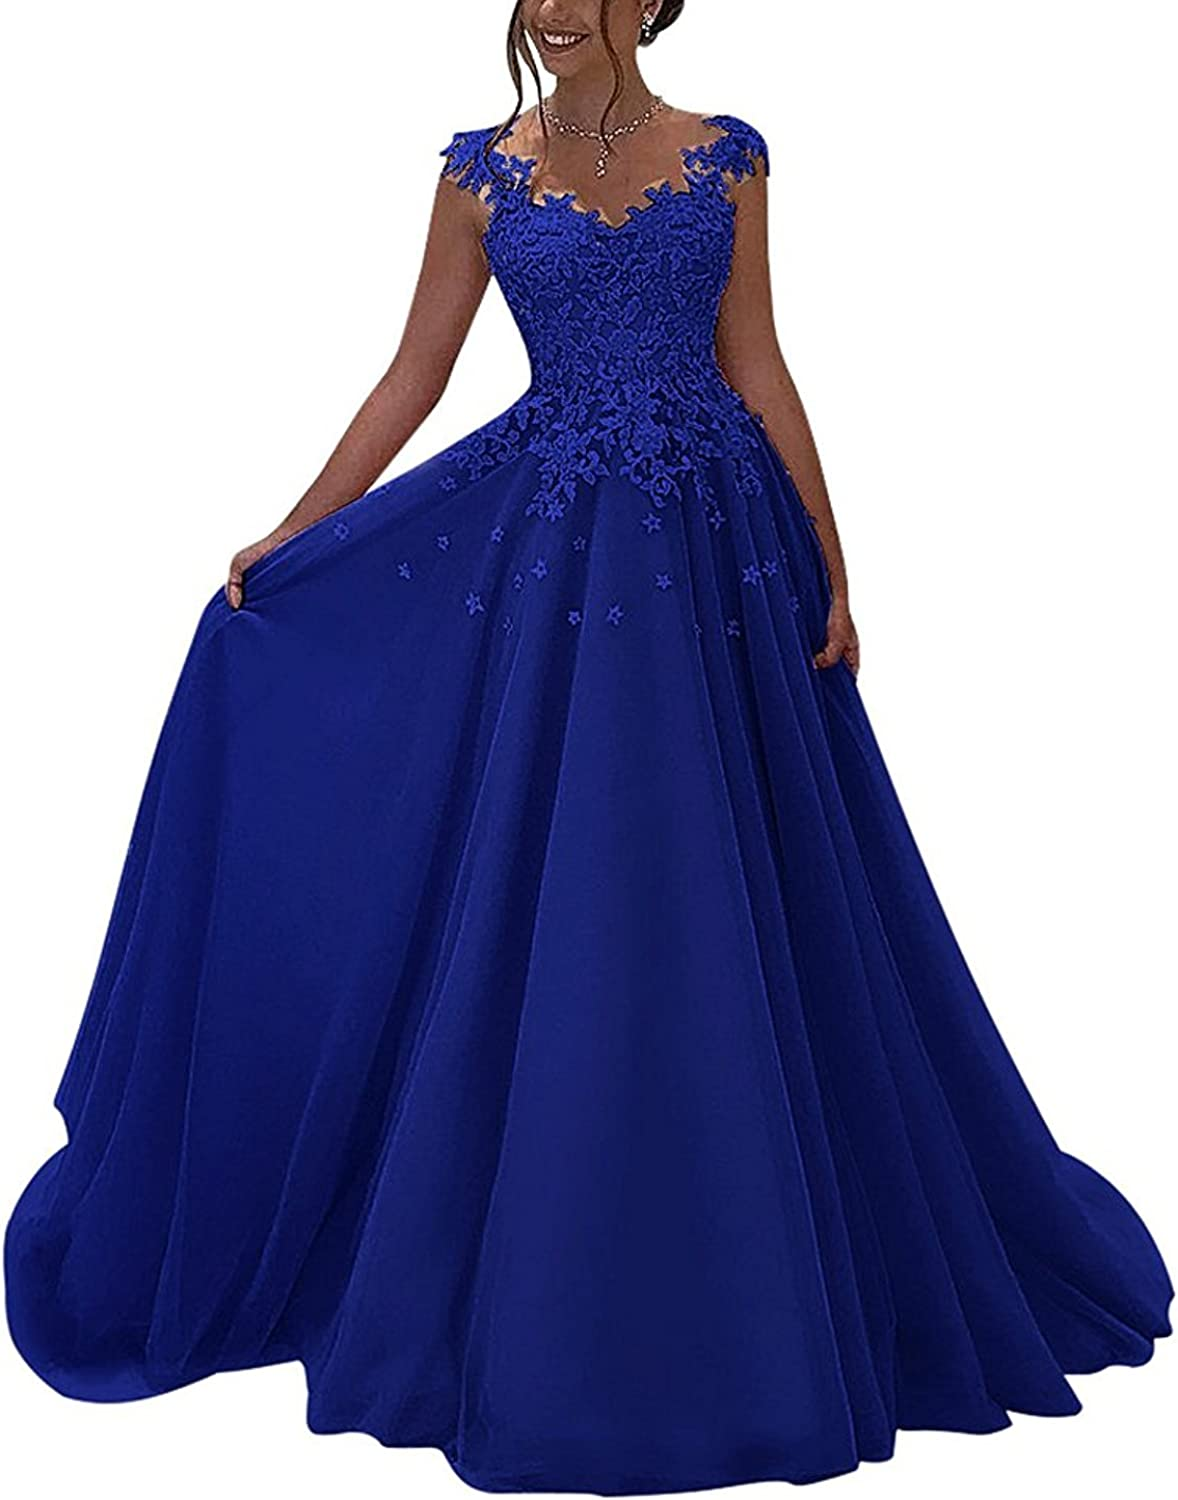 20KyleBird VNeck Lace Appliques Prom Dresses Long Beaded ALine Evening Gowns for Women Formal KB007